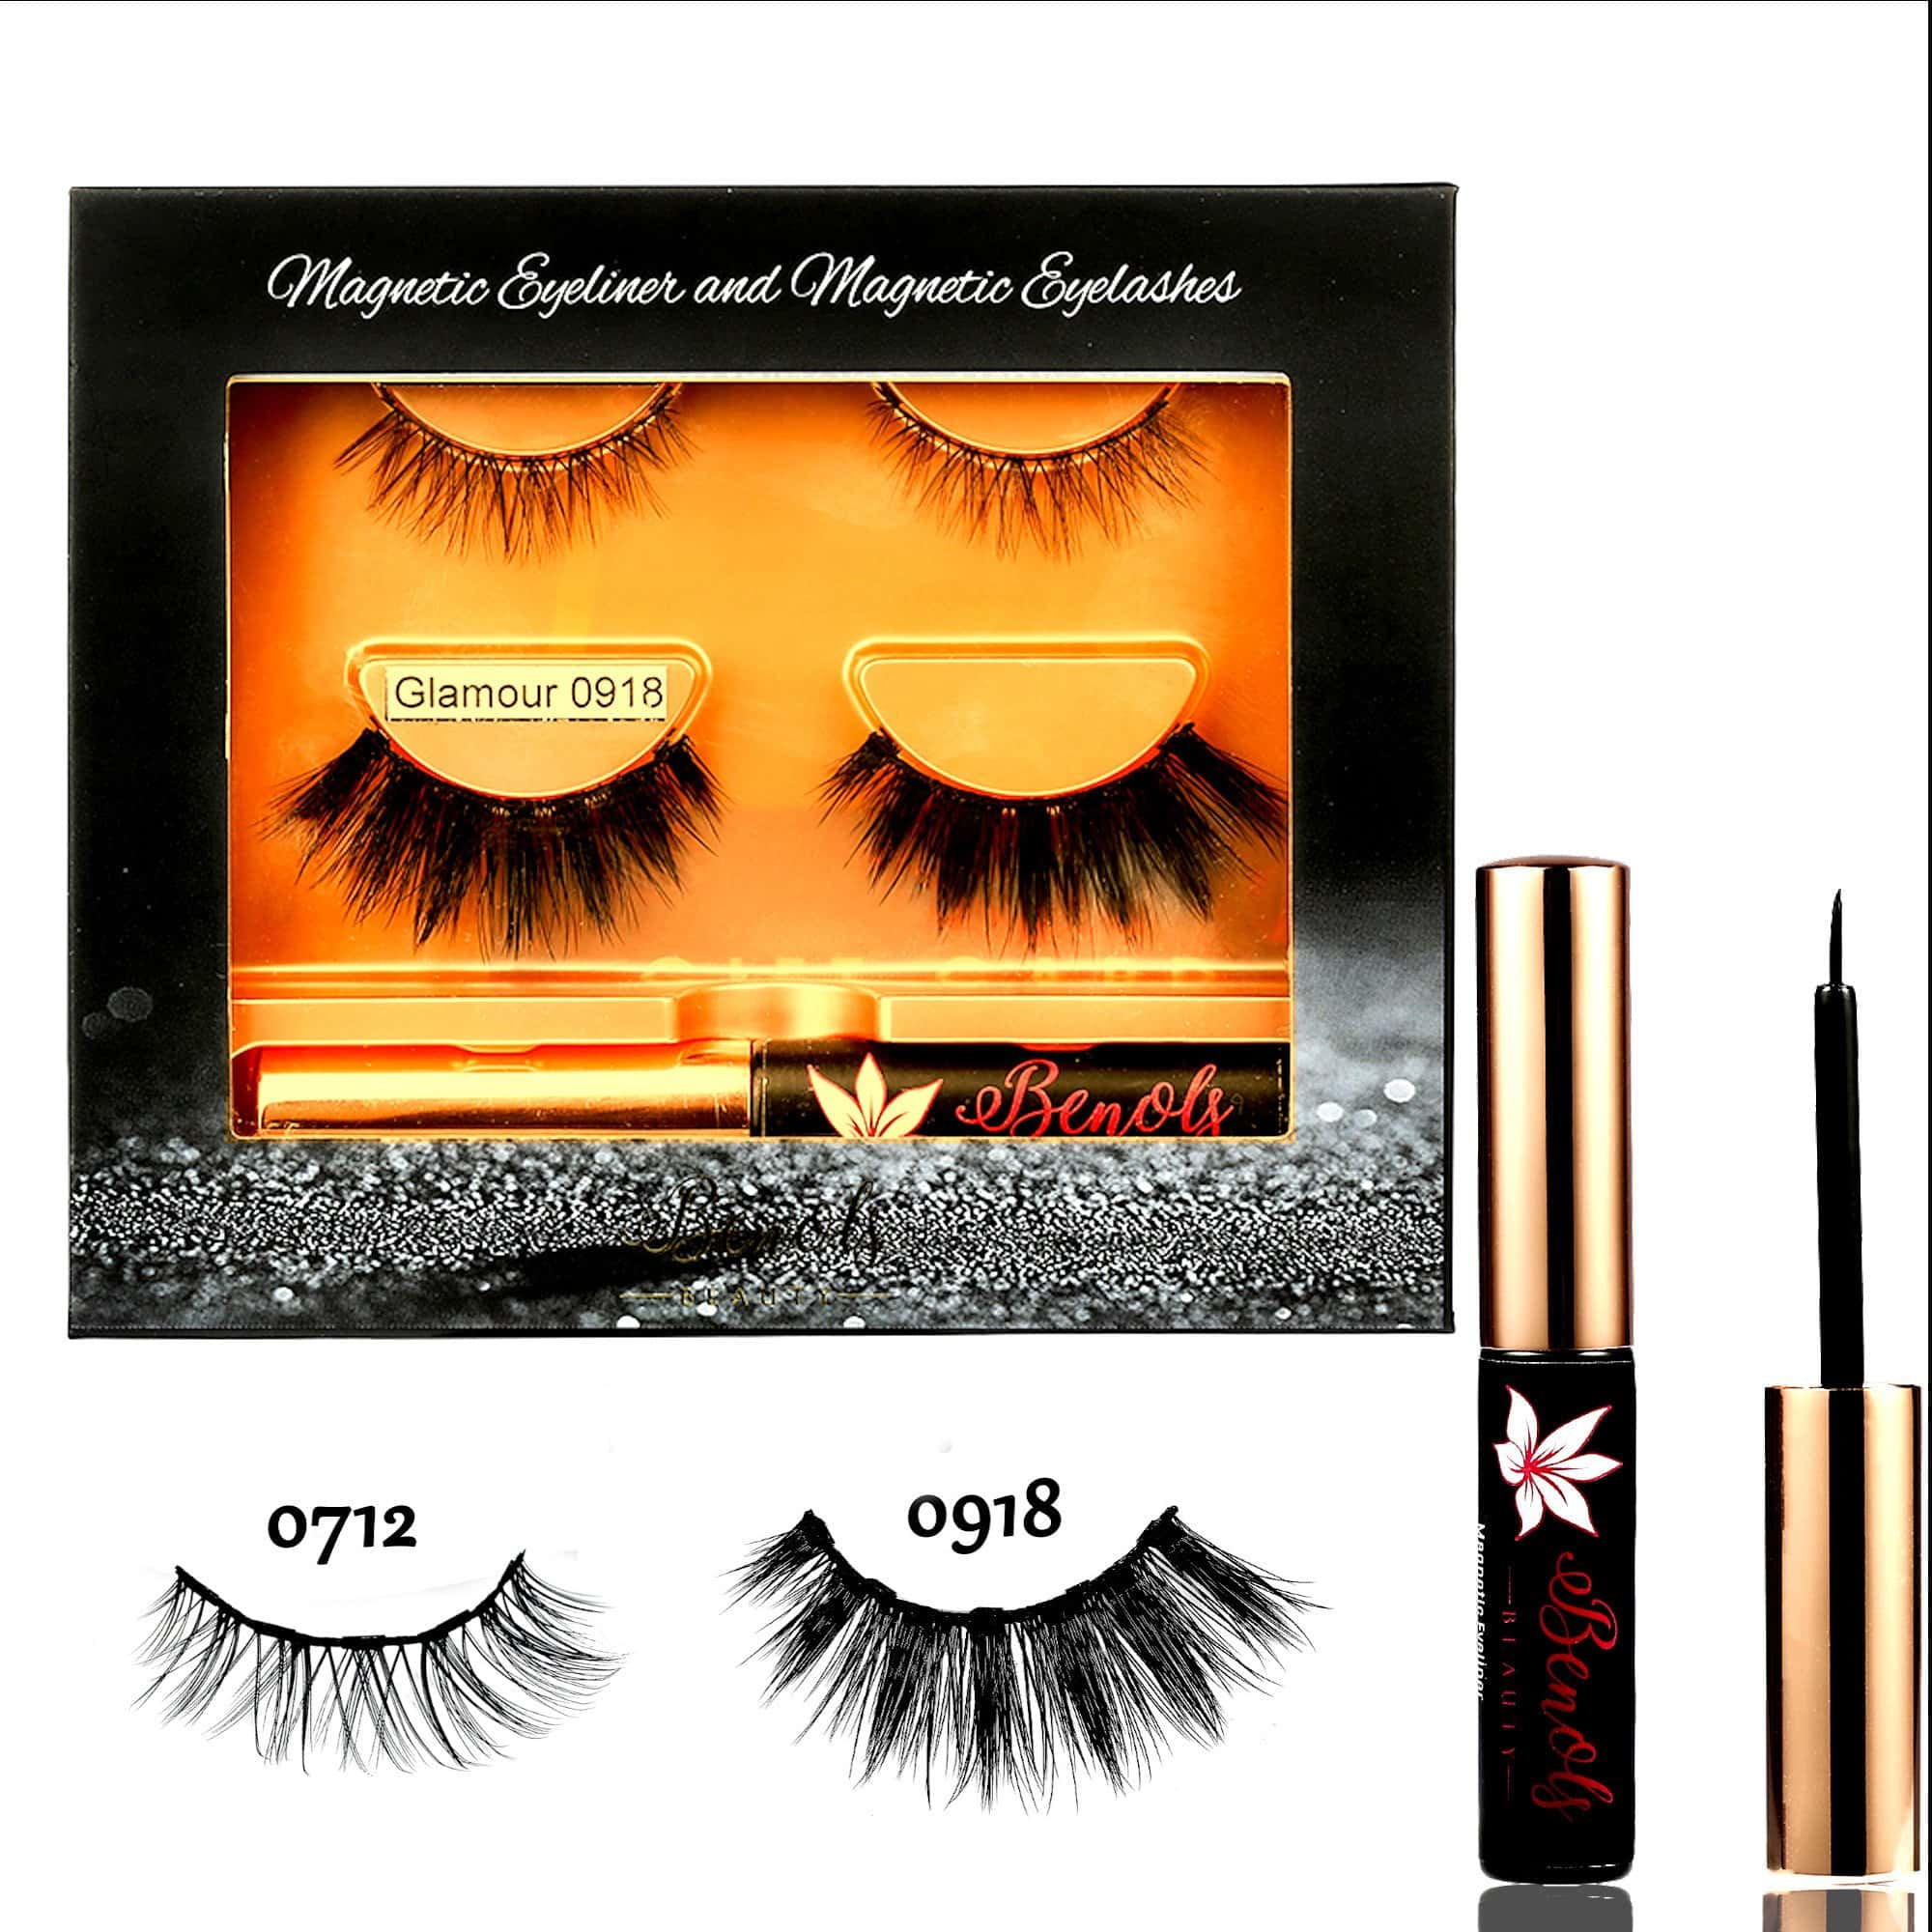 Glamour 3D Natural Look 5 Magnets Mink Lashes with Magnetic Eyeliner - Benols Beauty